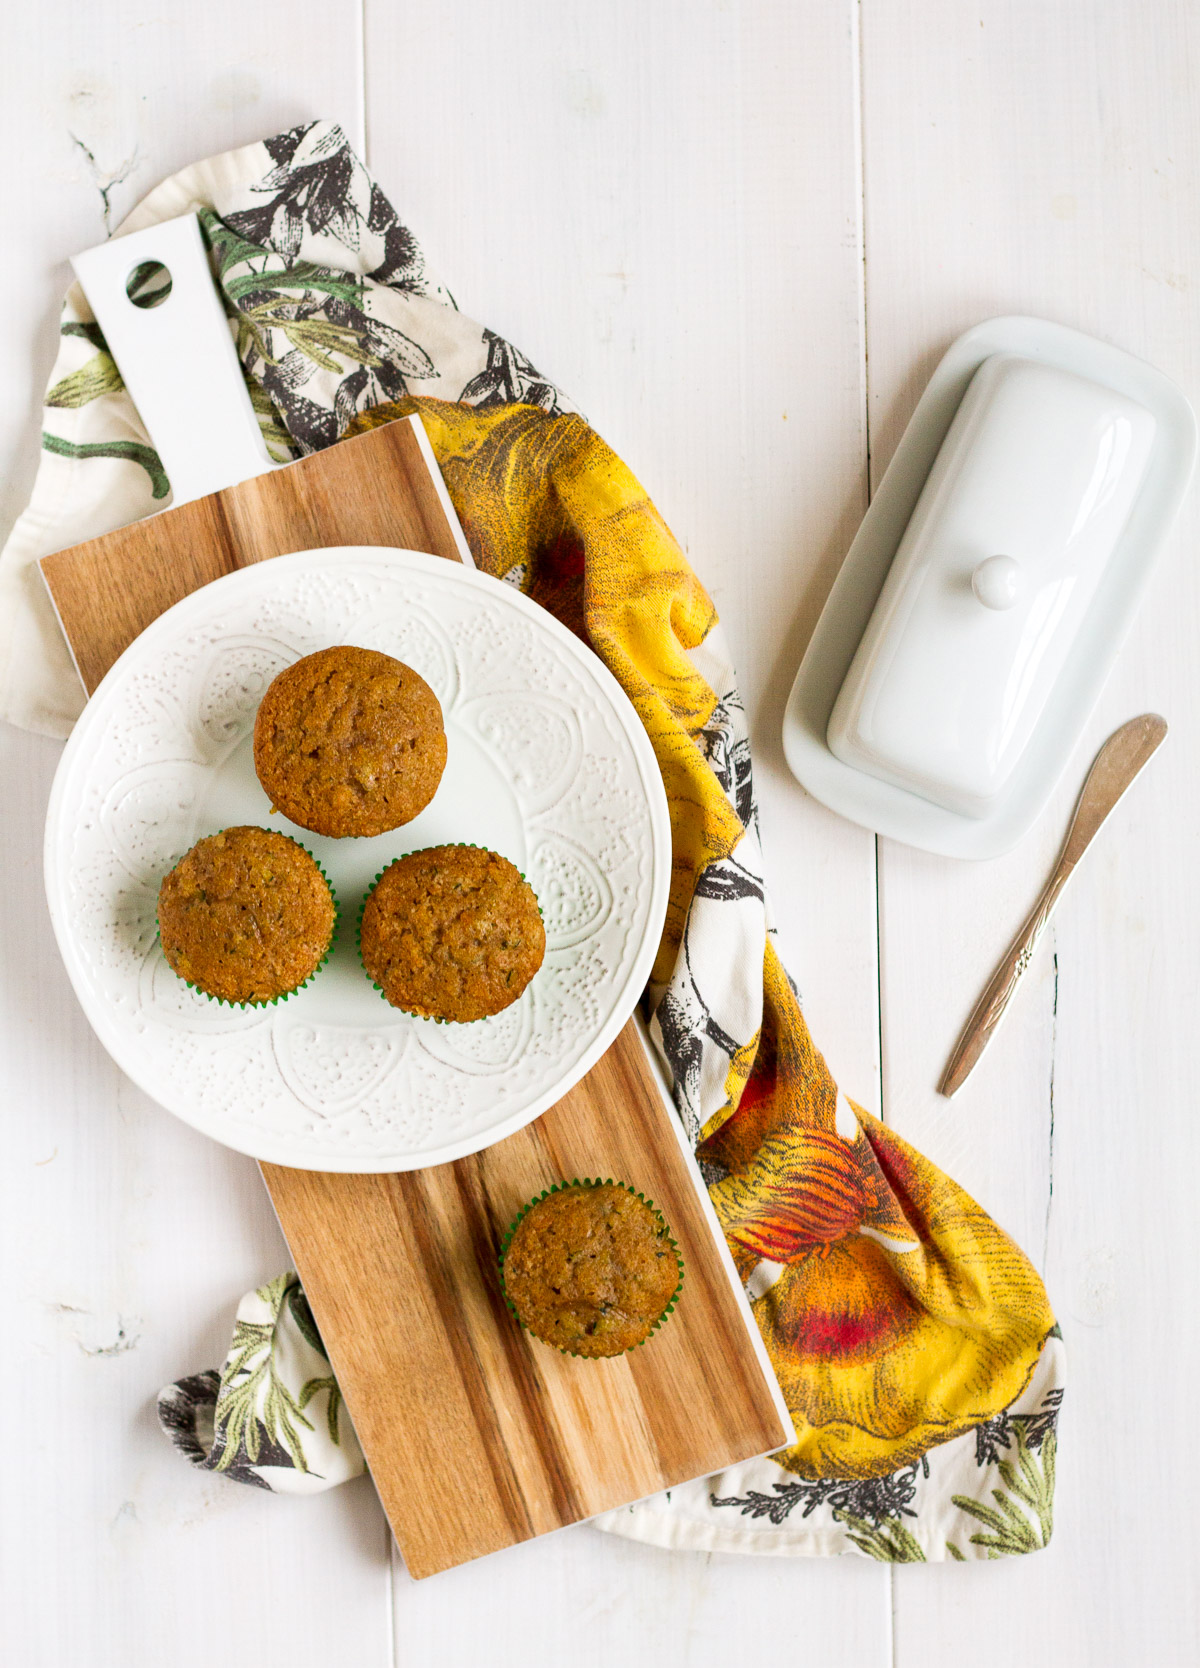 These easy zucchini muffins are a delicious way to use up all the delicious zucchini from your garden.